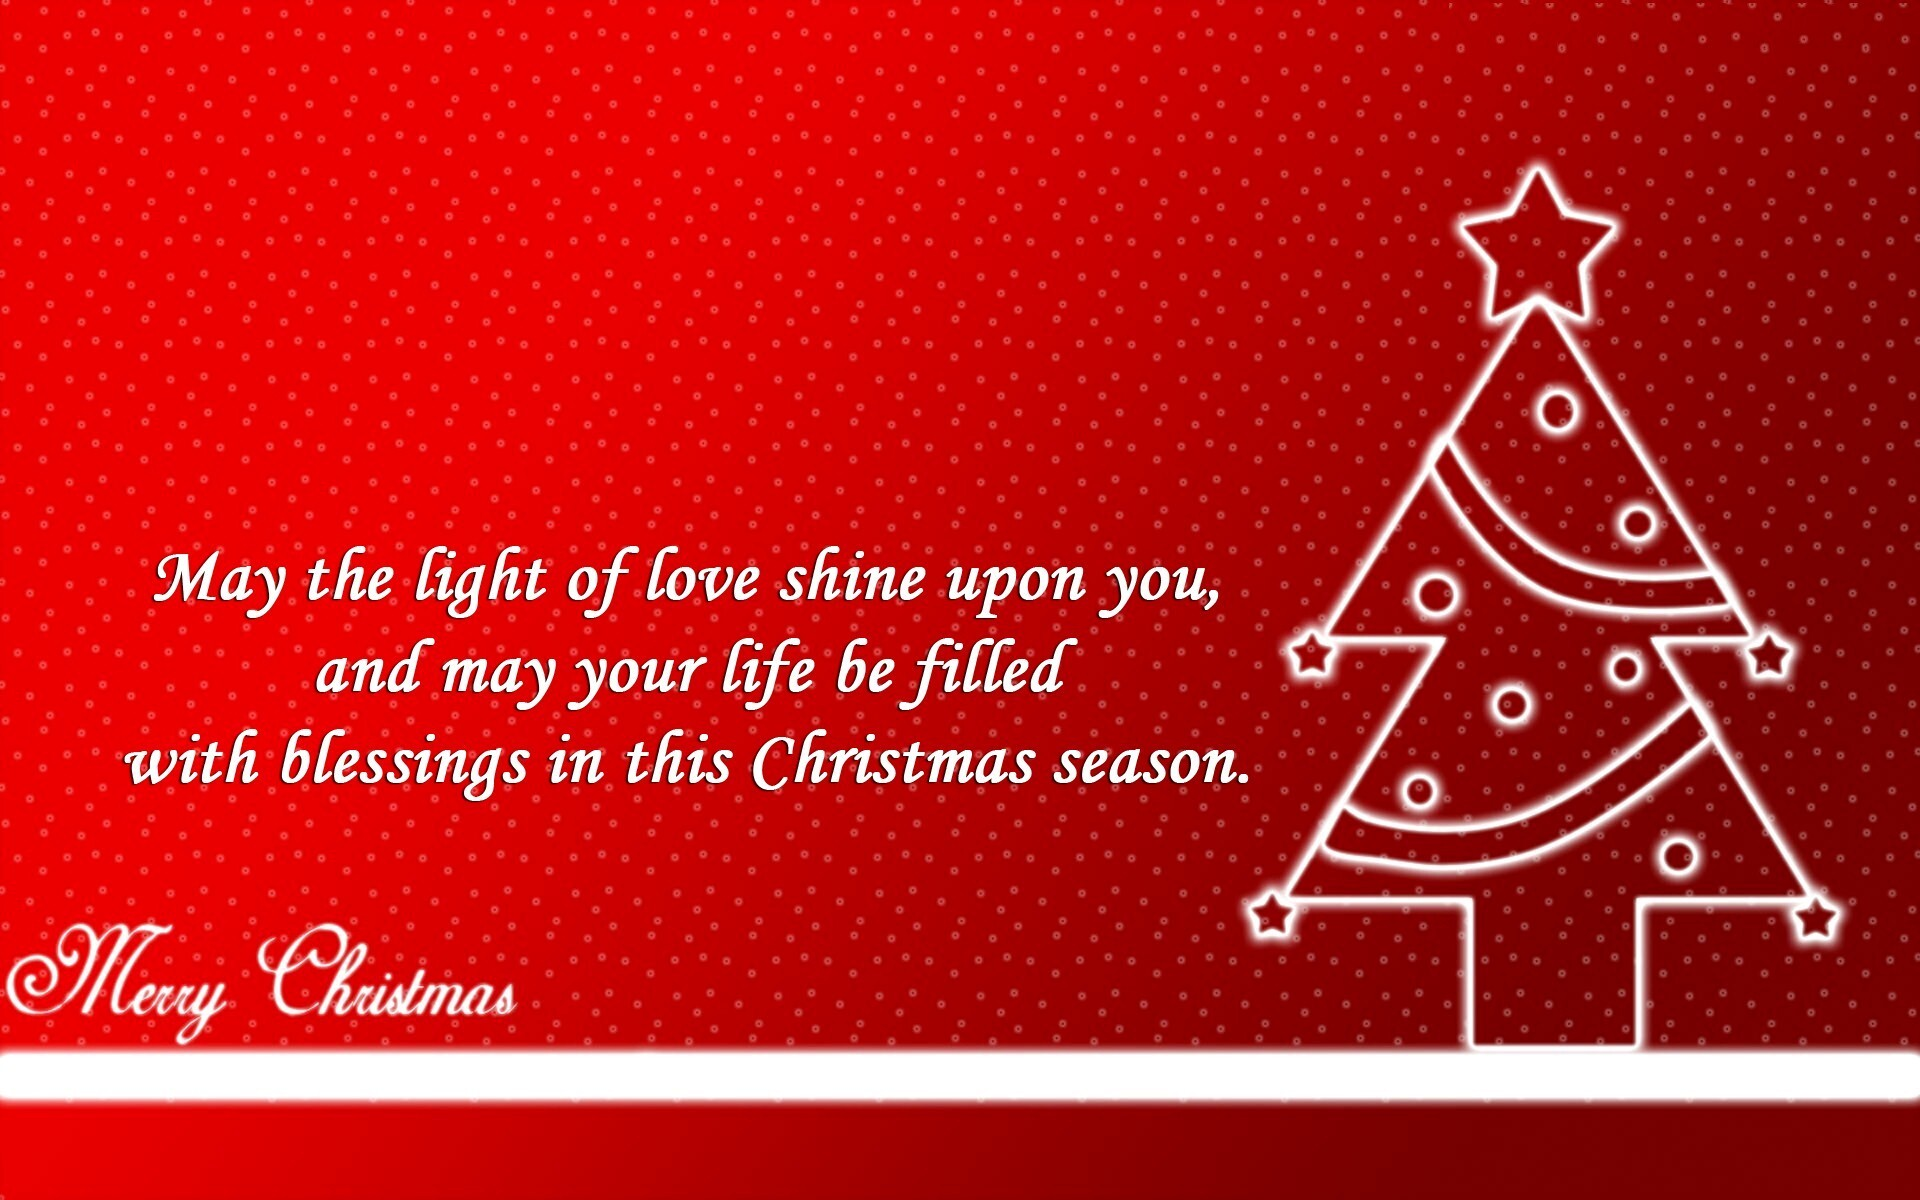 Beautiful christmas greeting quote hd desktop wallpapers hd wallpapers m4hsunfo